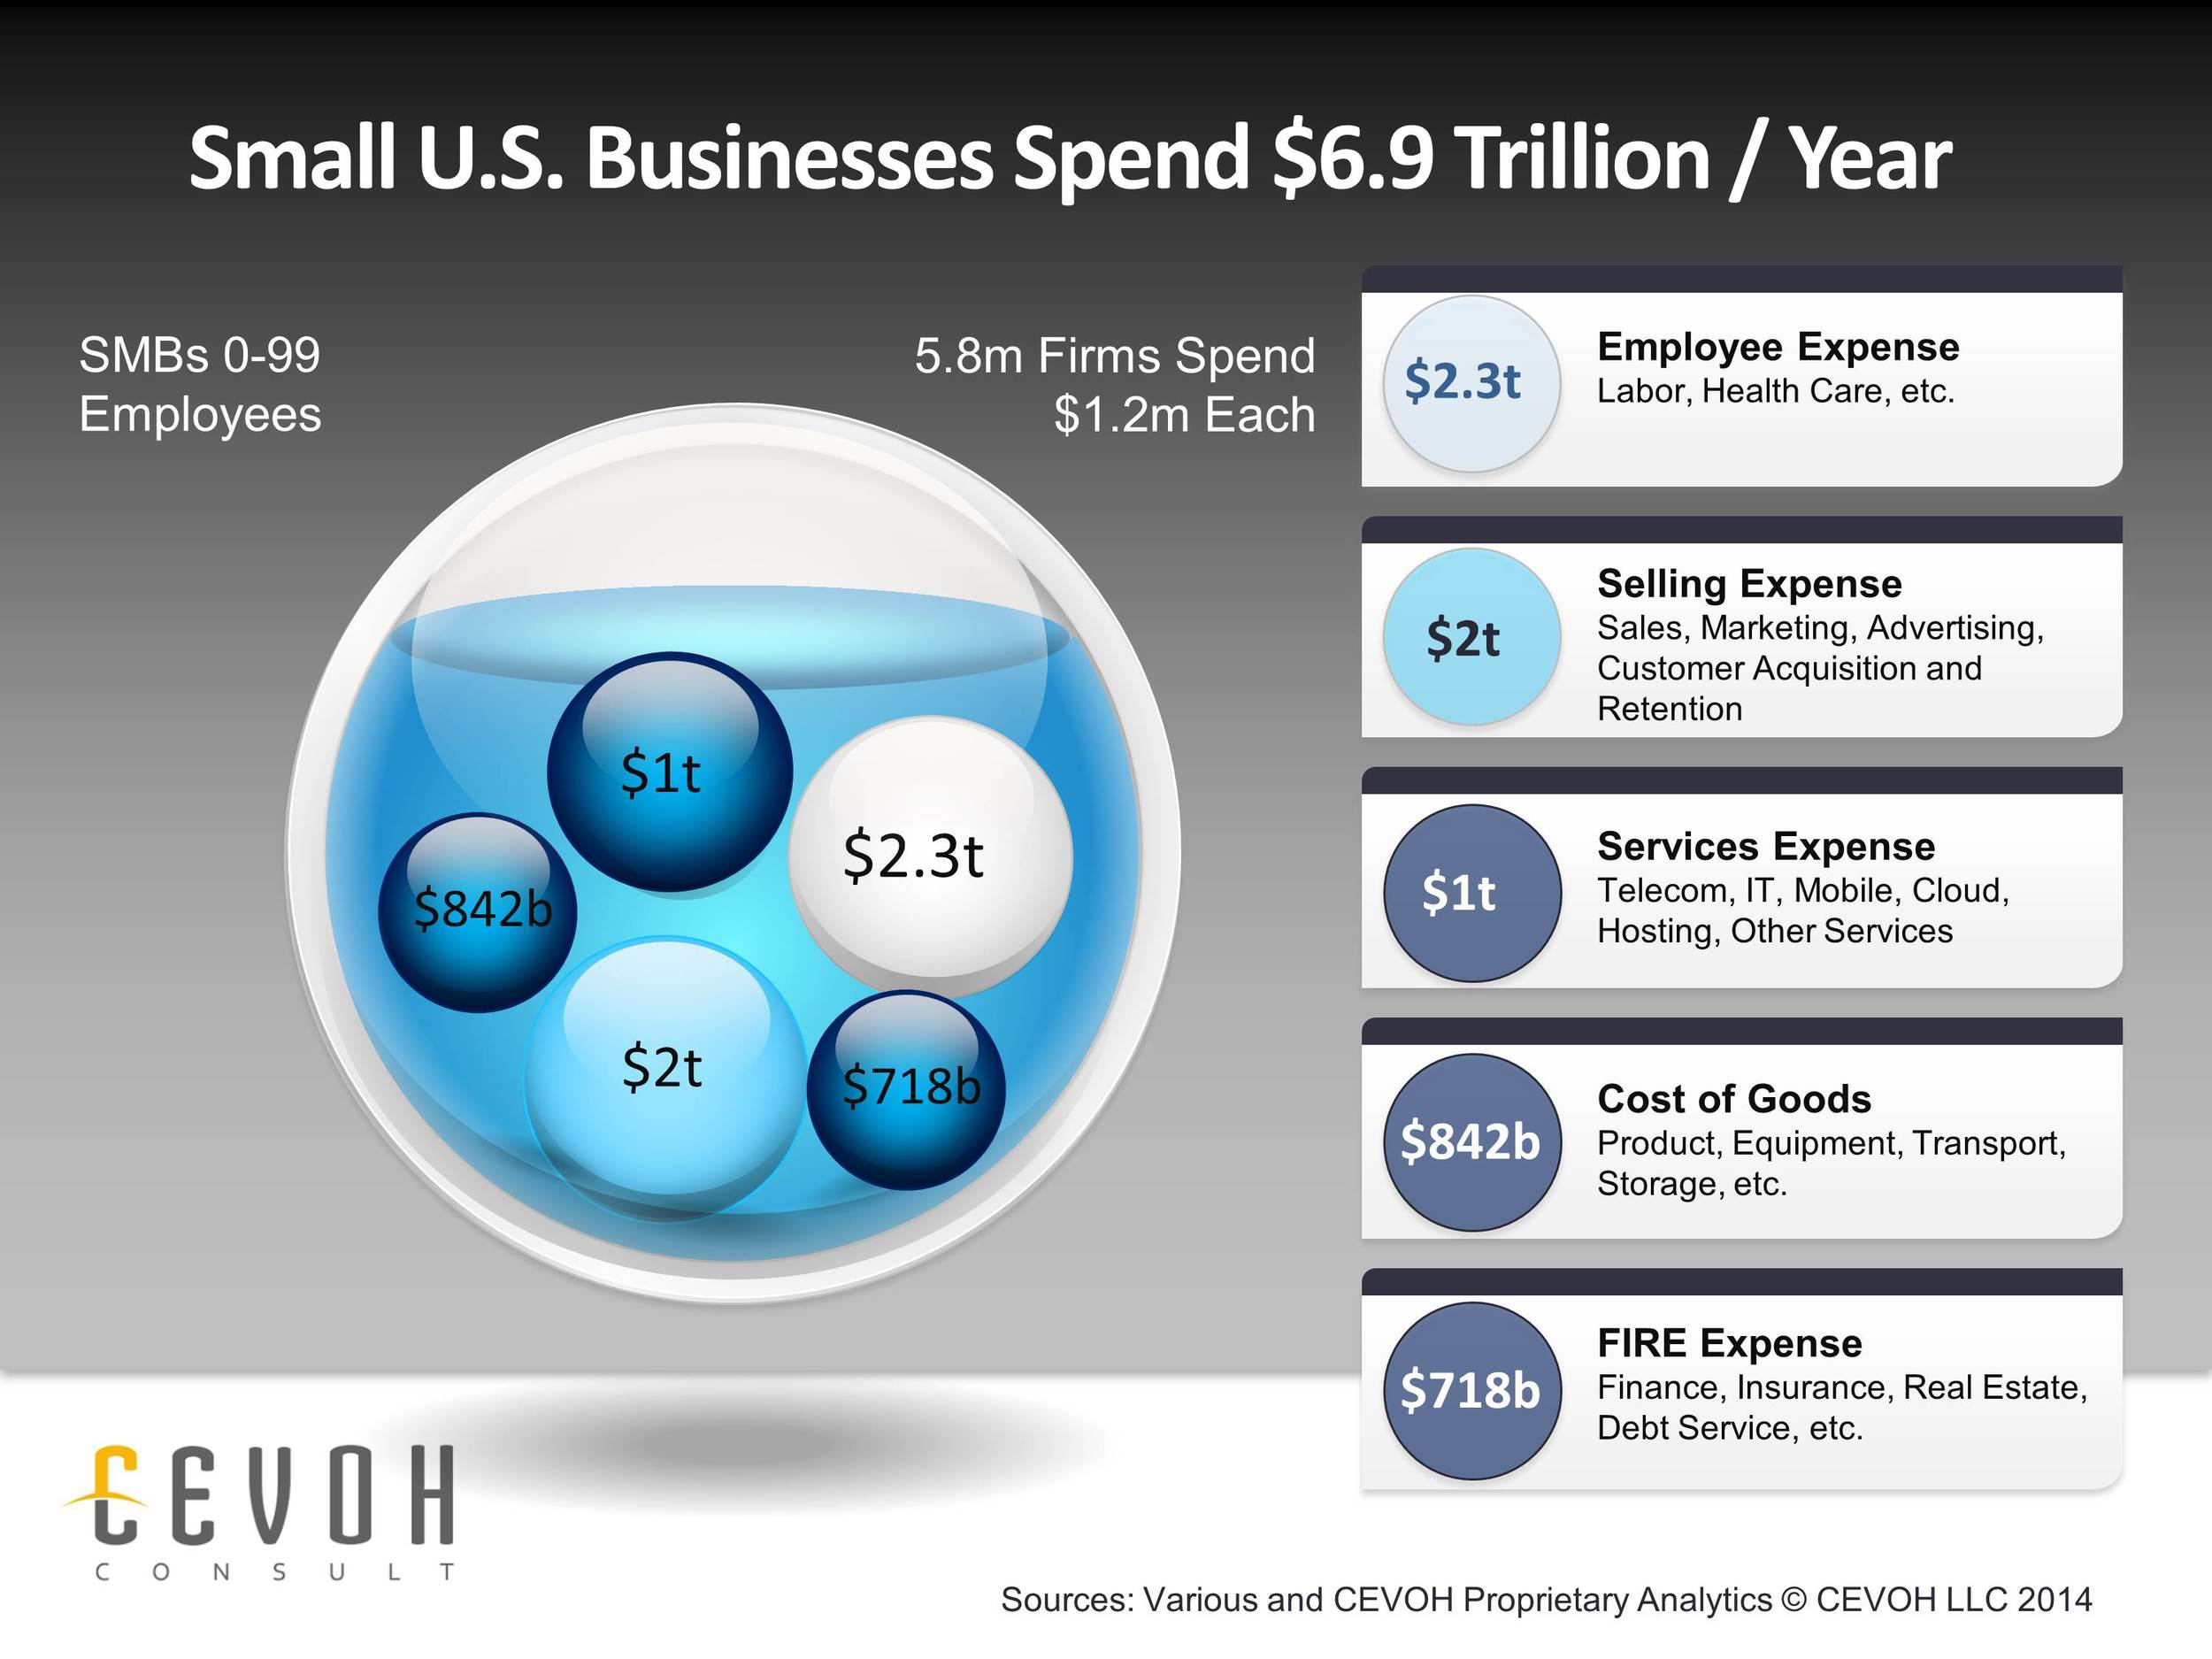 Small Business Spending